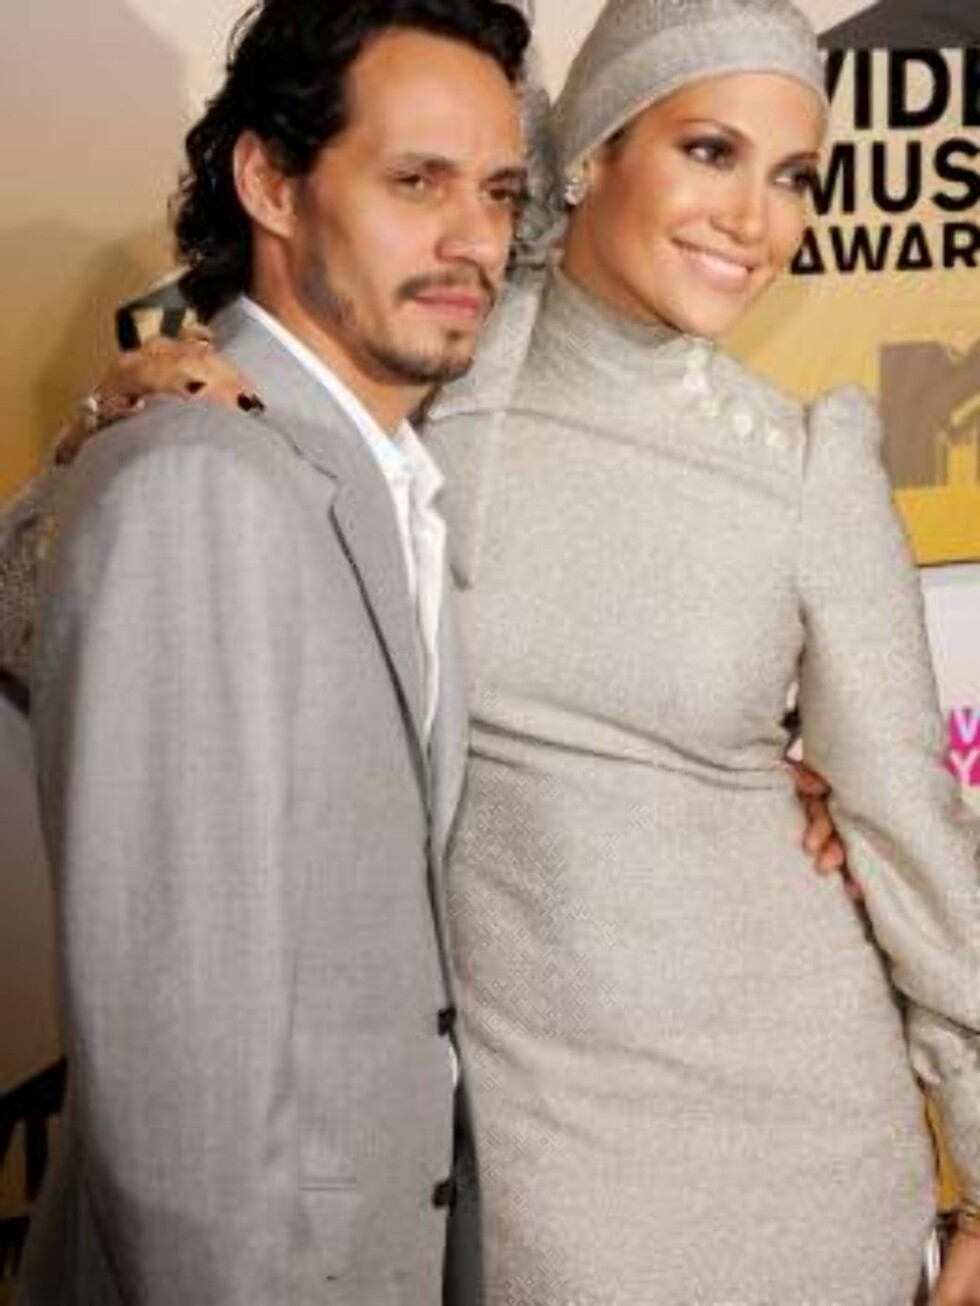 NEW YORK - AUGUST 31:  Singers Marc Anthony and Jennifer Lopez attends the 2006 MTV Video Music Awards at Radio City Music Hall August 31, 2006 in New York City.  (Photo by Evan Agostini/Getty Images) *** Local Caption *** Jennifer Lopez;Marc Anthony  * S Foto: All Over Press